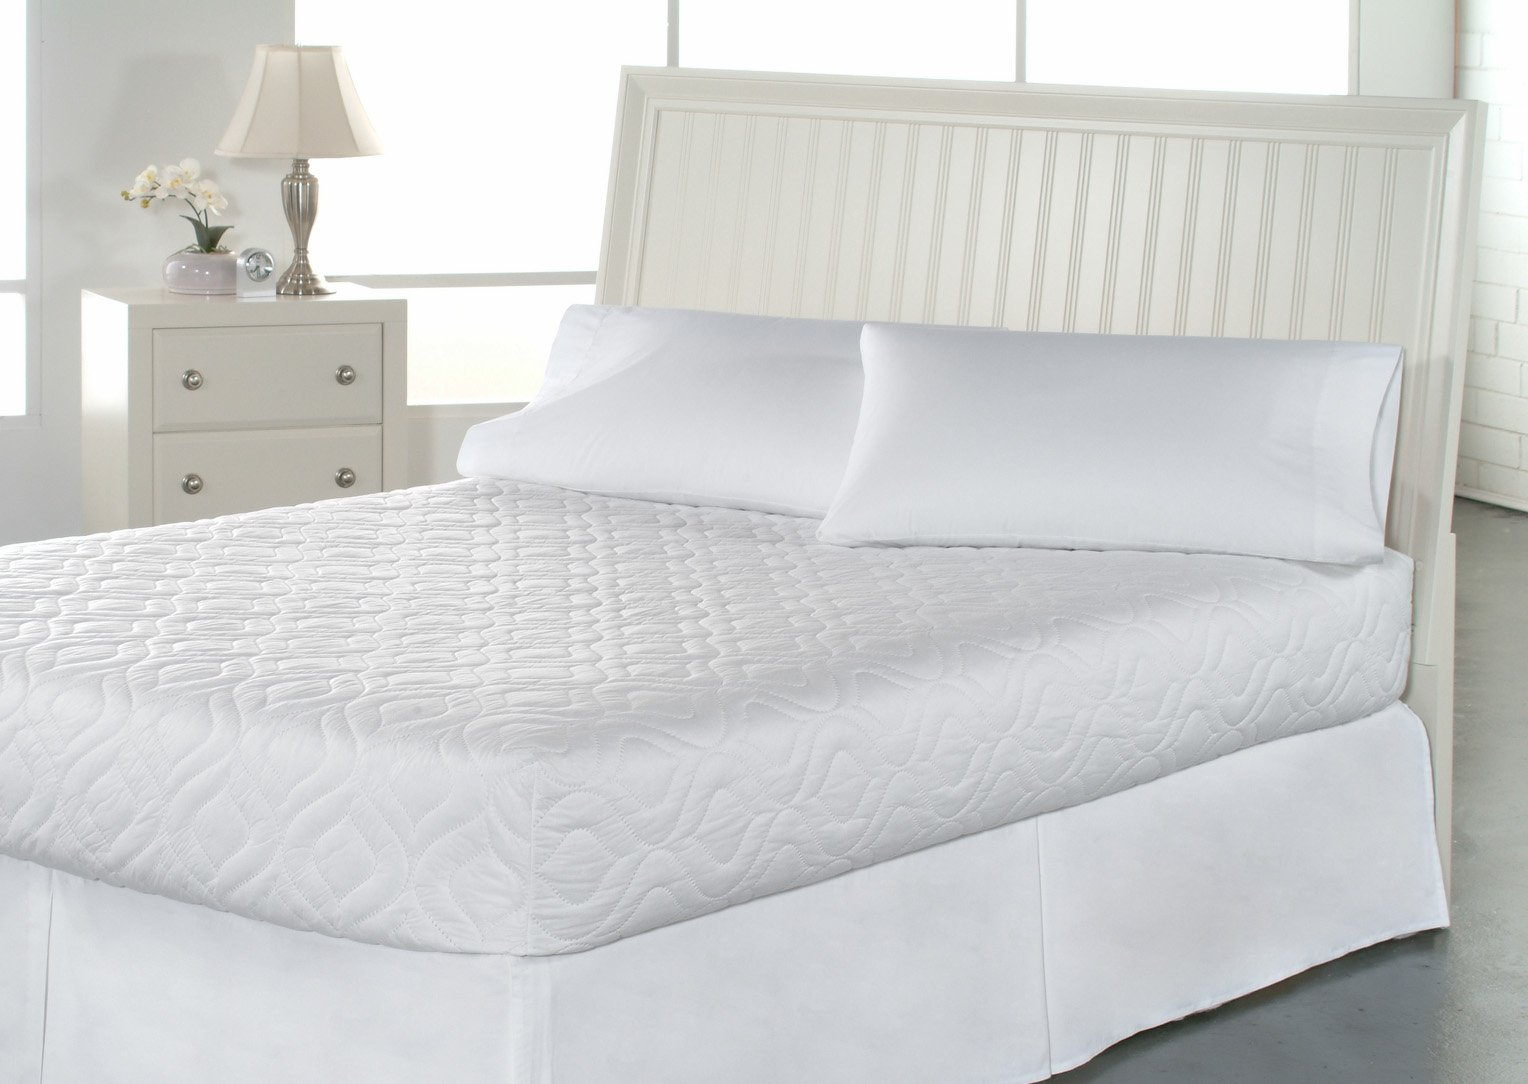 Bed Mattress Pad Cover Twin Xl White Protector Pillow Top ...